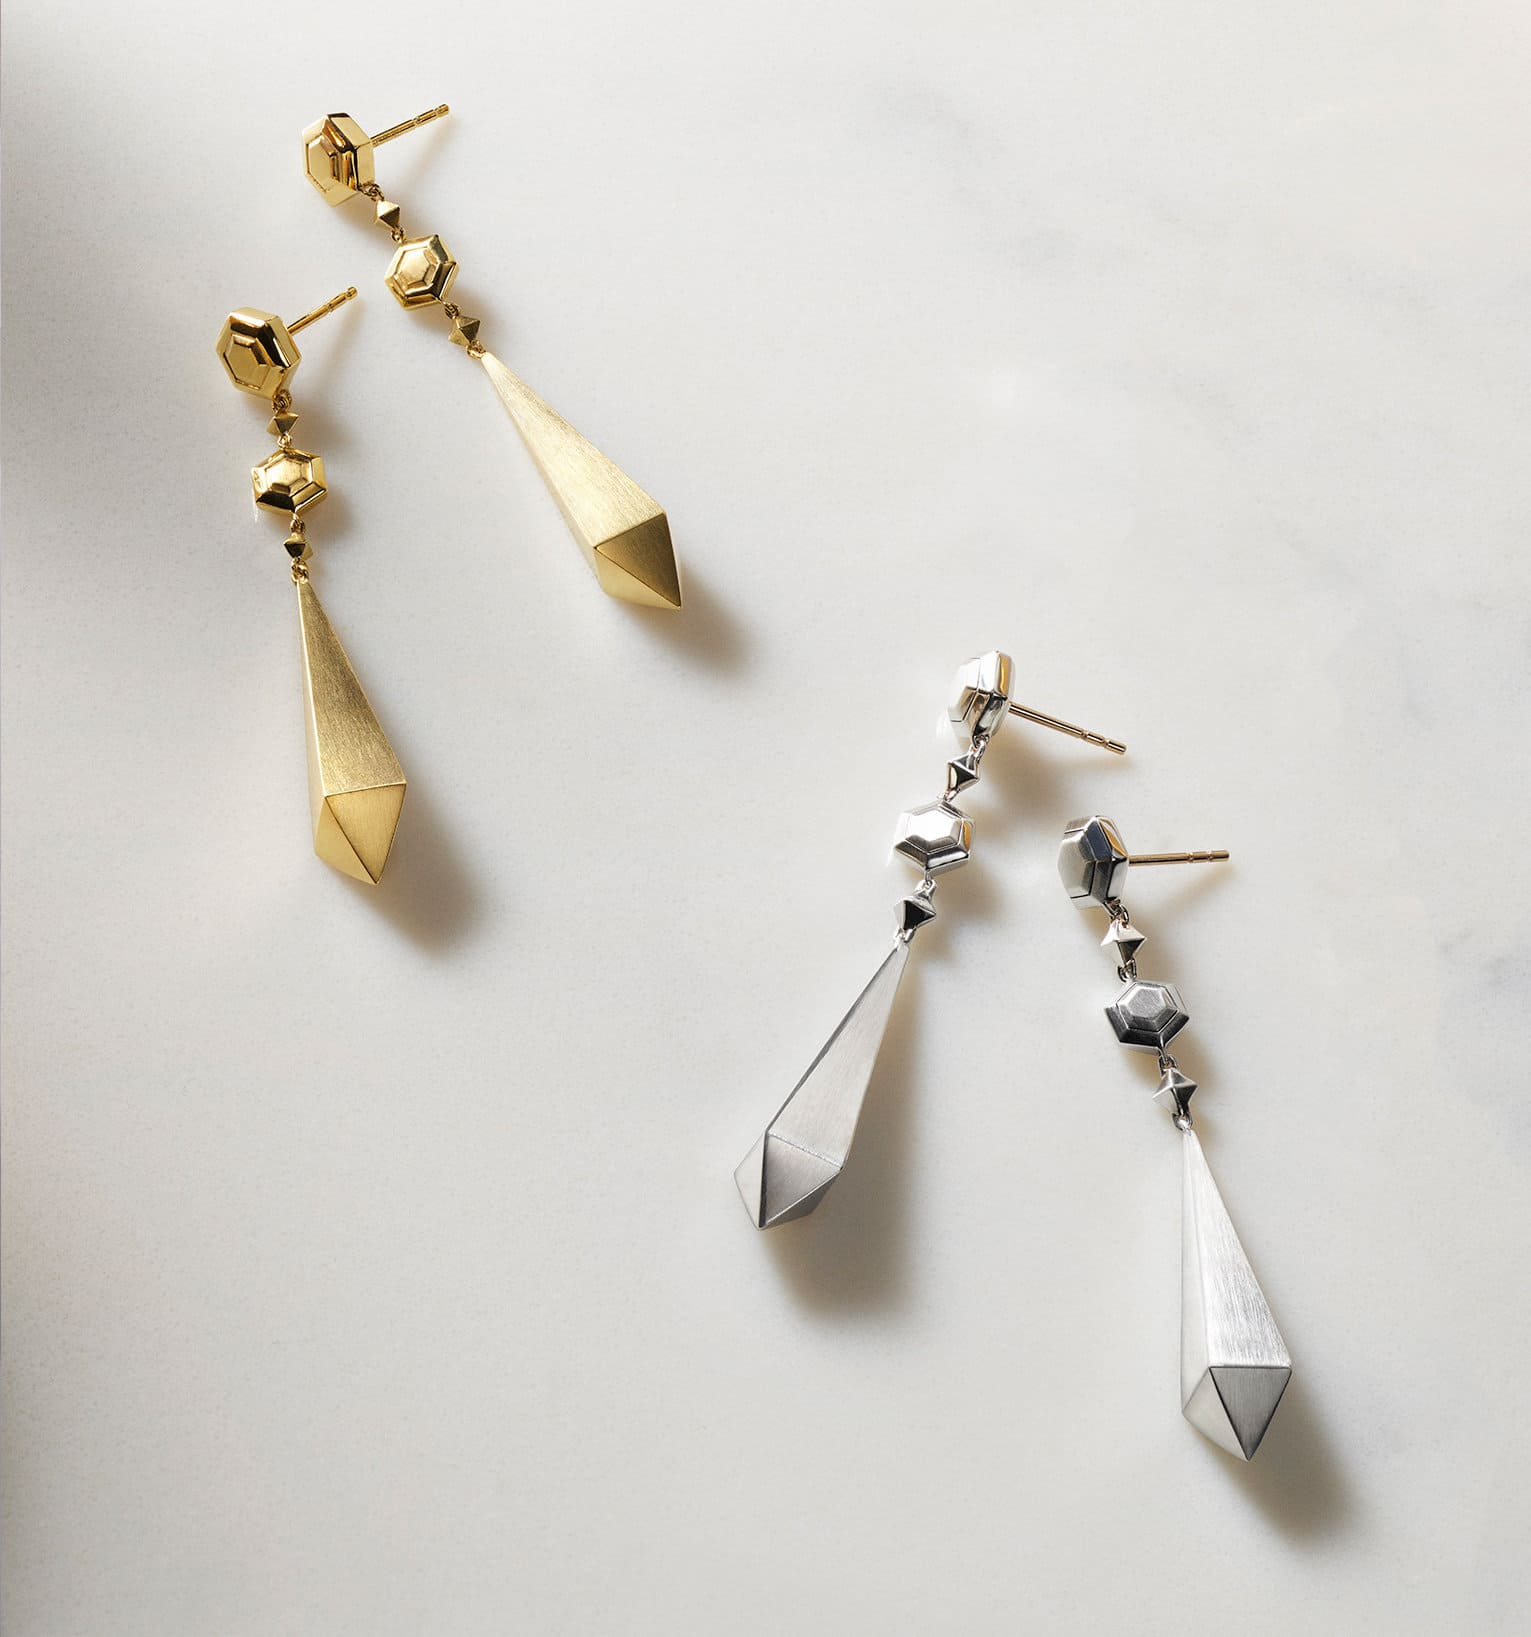 A color photo shows two pairs of David Yurman women's earrings from the Renaissance Collection scattered on a grey marble surface nearby a white-and-pink flower, a perfume bottle and a golden tray. One pair is crafted from 18K yellow gold and the other pair is crafted from sterling silver.